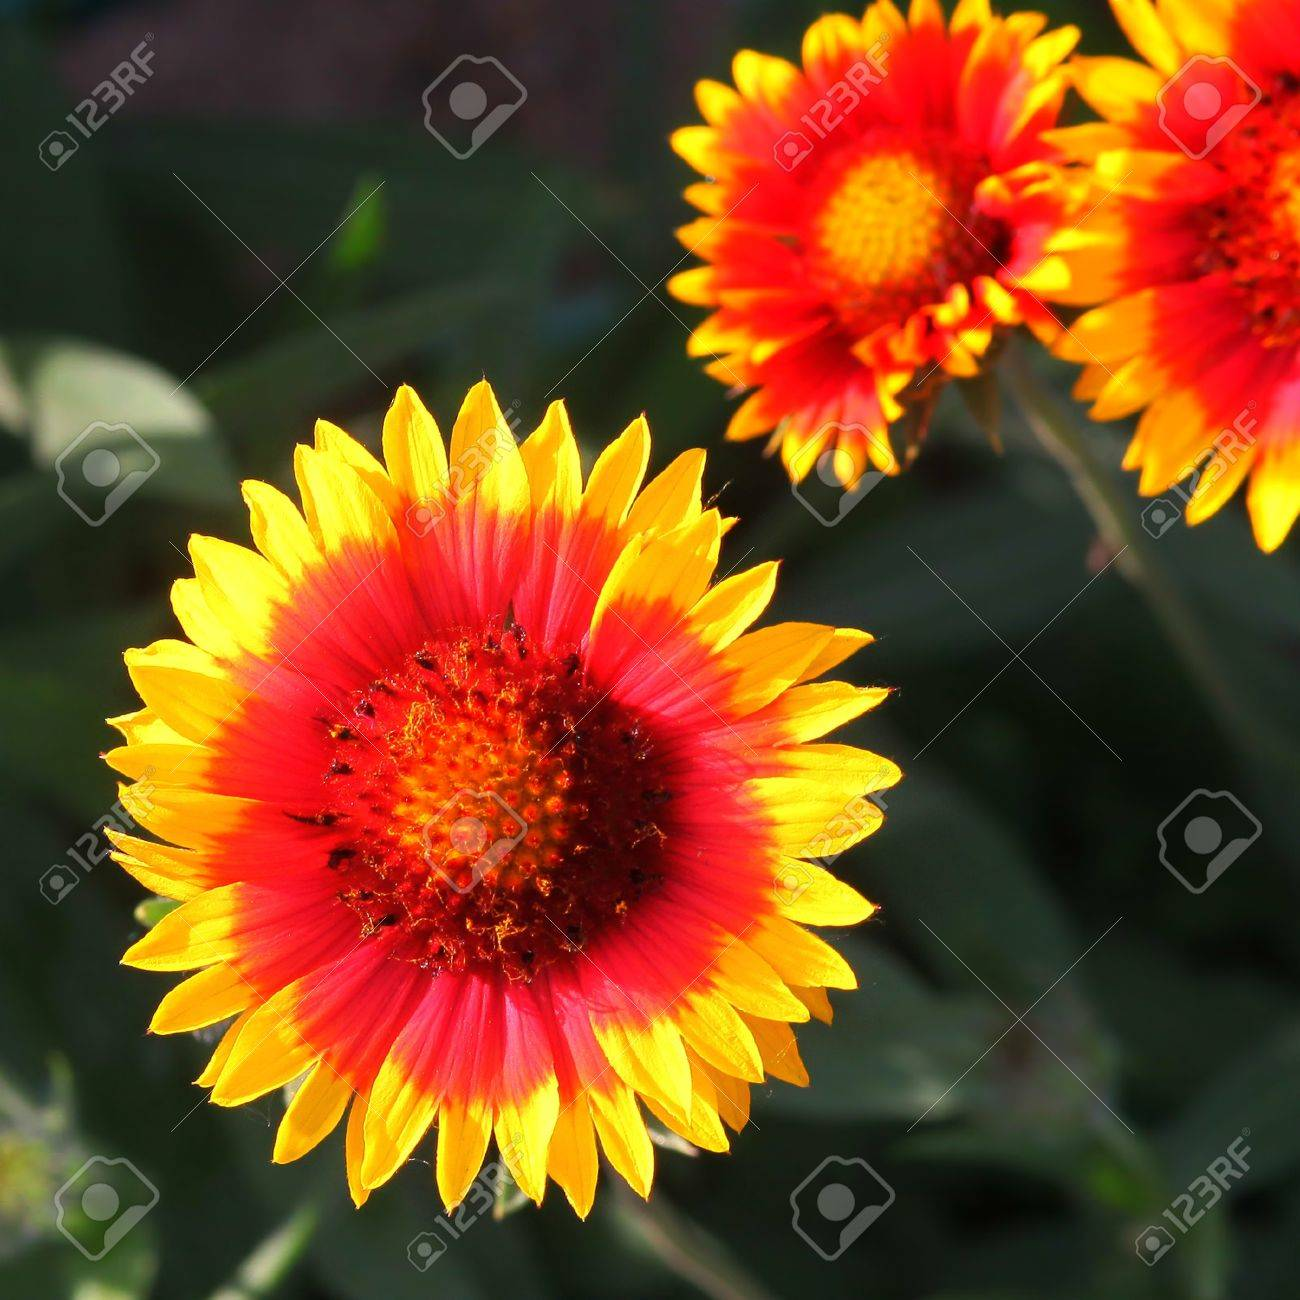 Red Yellow Flower Wallpaper Background Nature Summer Spring Stock Photo